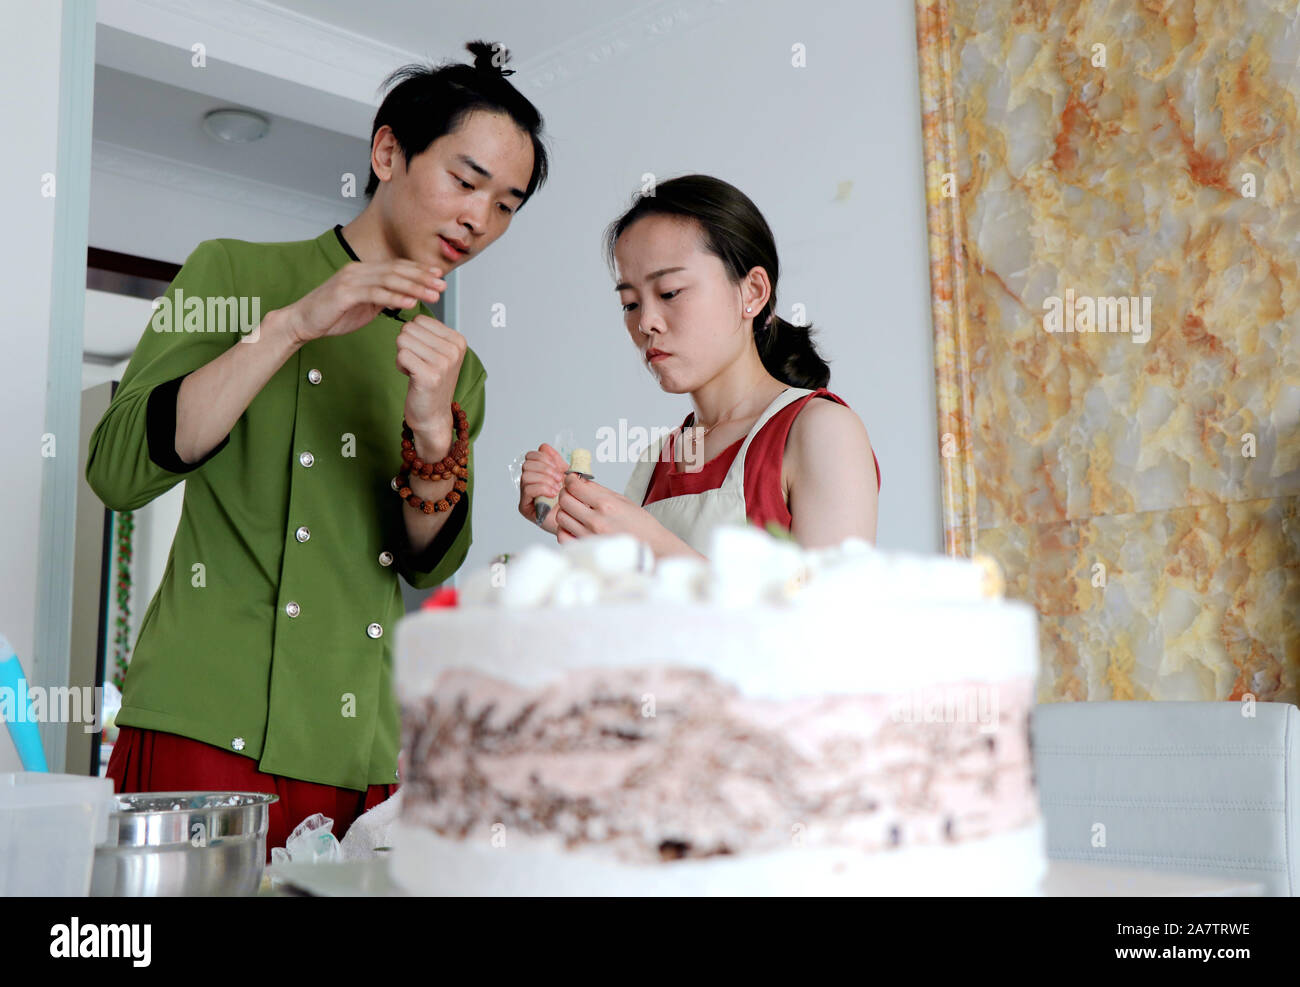 Stupendous Chinese Man Liu Zepeng Makes A Birthday Cake Featuring The Personalised Birthday Cards Vishlily Jamesorg